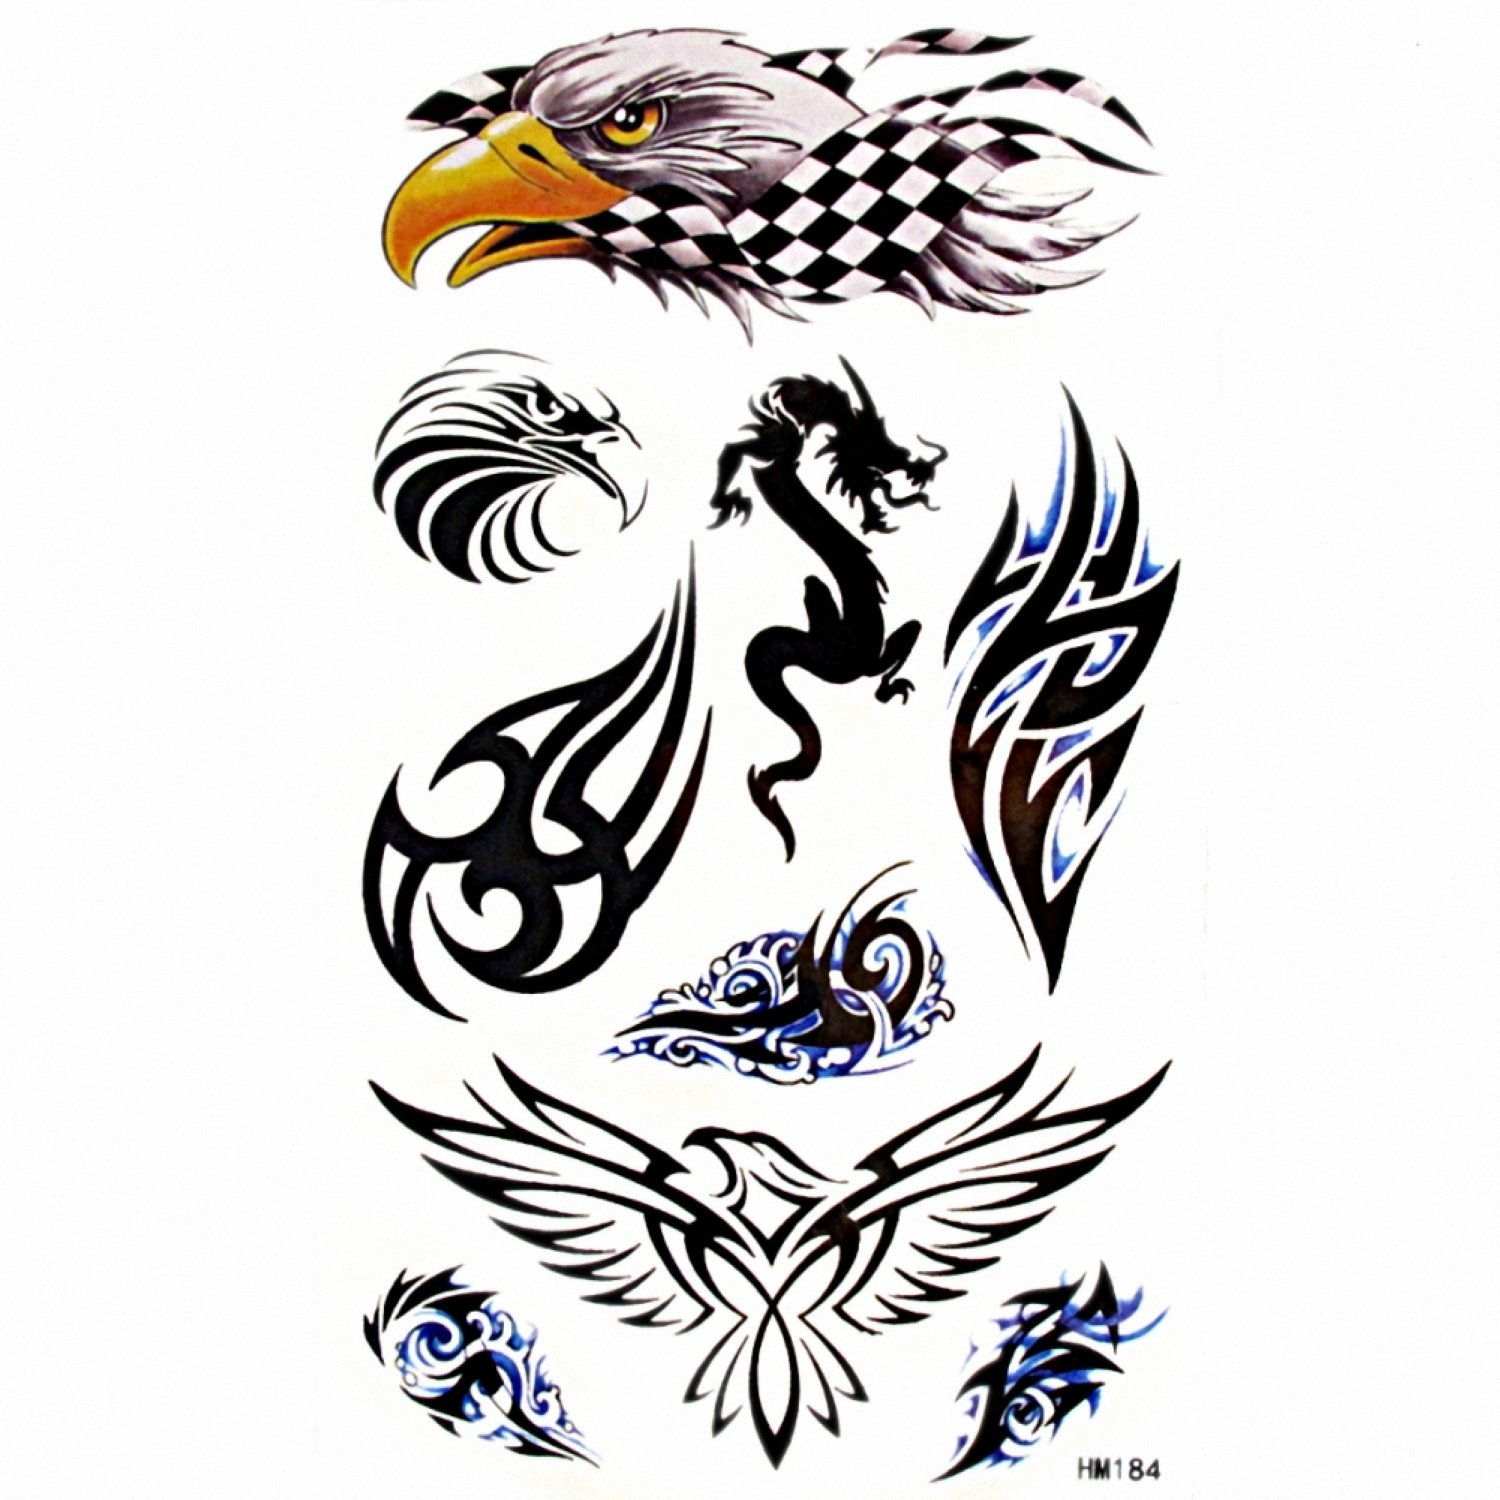 MapofBeauty Cool Animal Eagle/Dragon/Wing Temporary Waterproof Tattoo Body Art Sticker (2 pcs/lot)